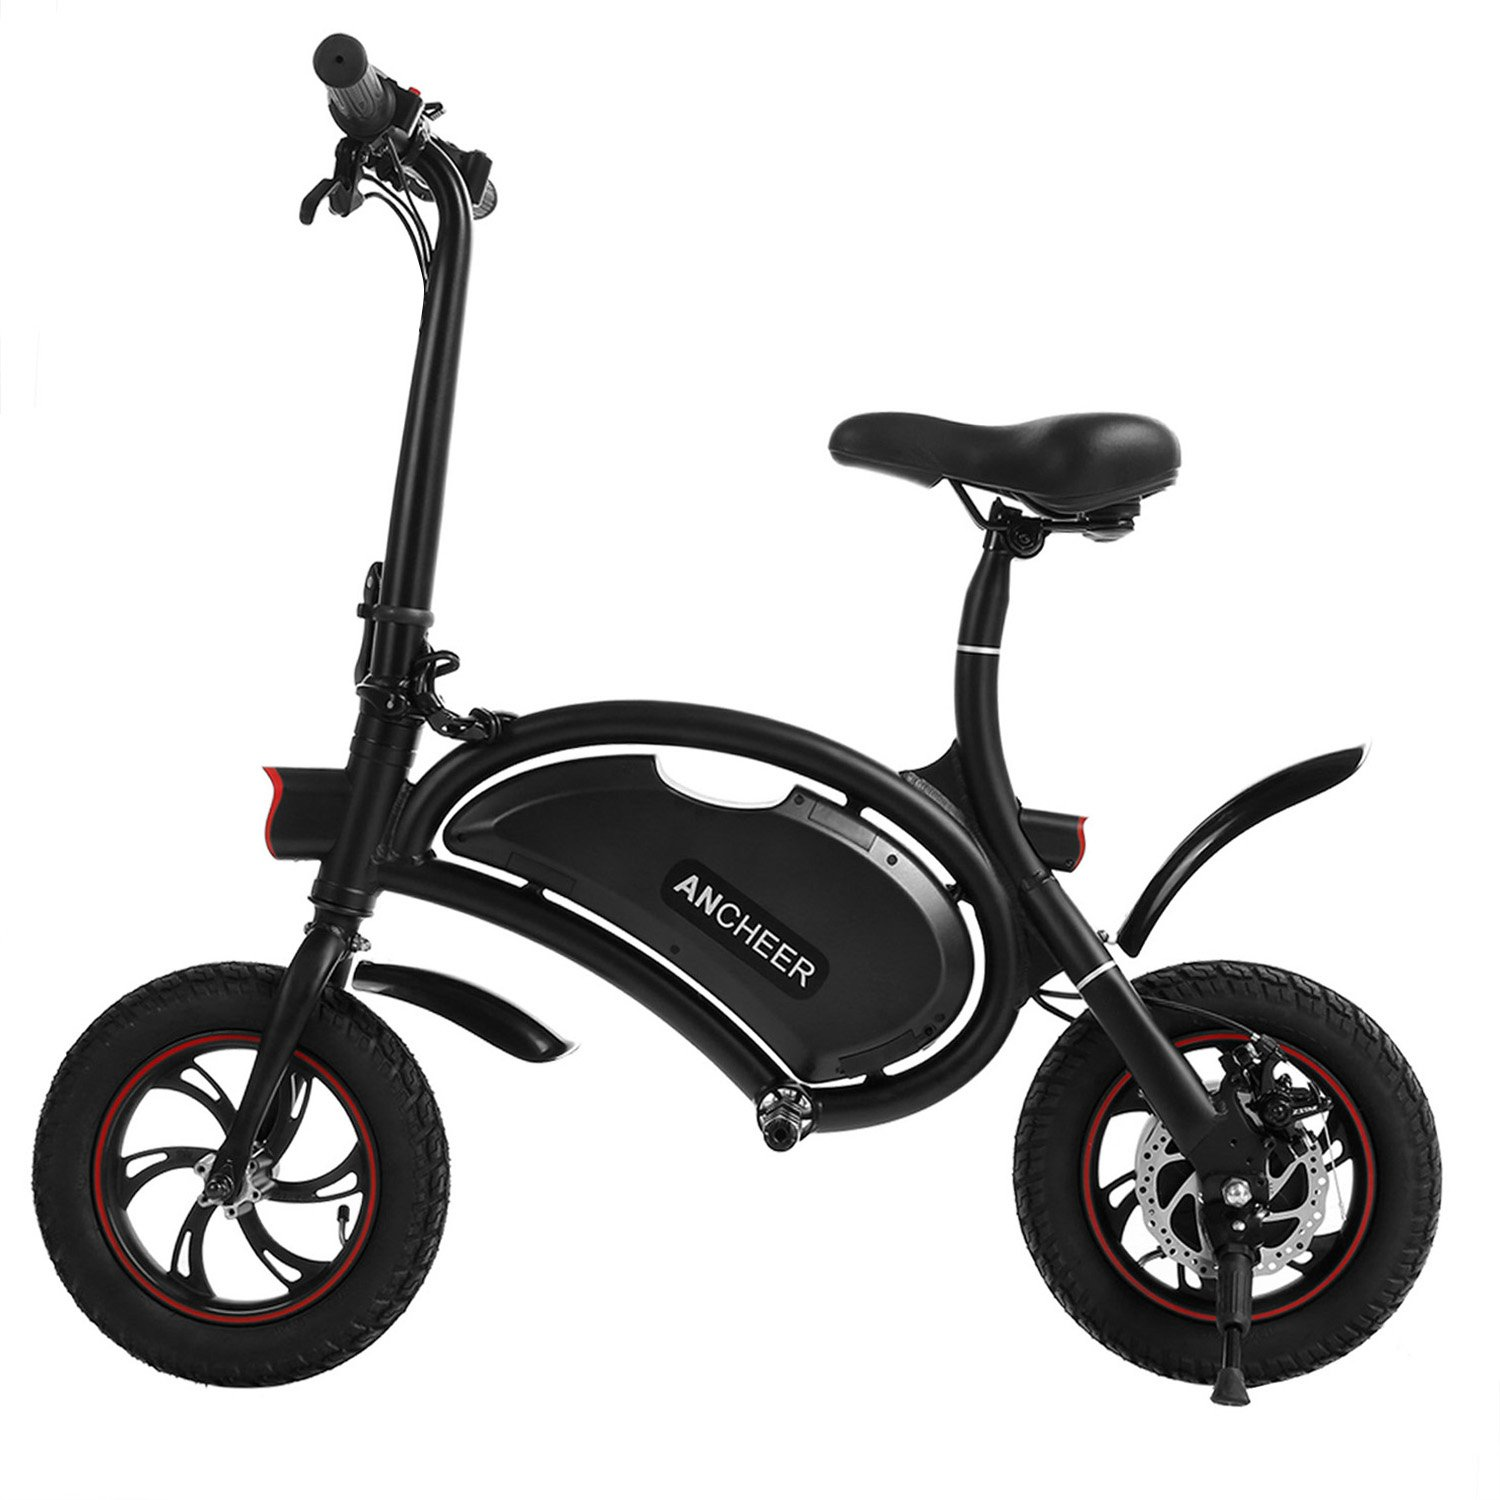 5ff20a6a501 ANCHEER Folding Electric Bicycle E-Bike Scooter 350W Ebike with 12 Mile  Range